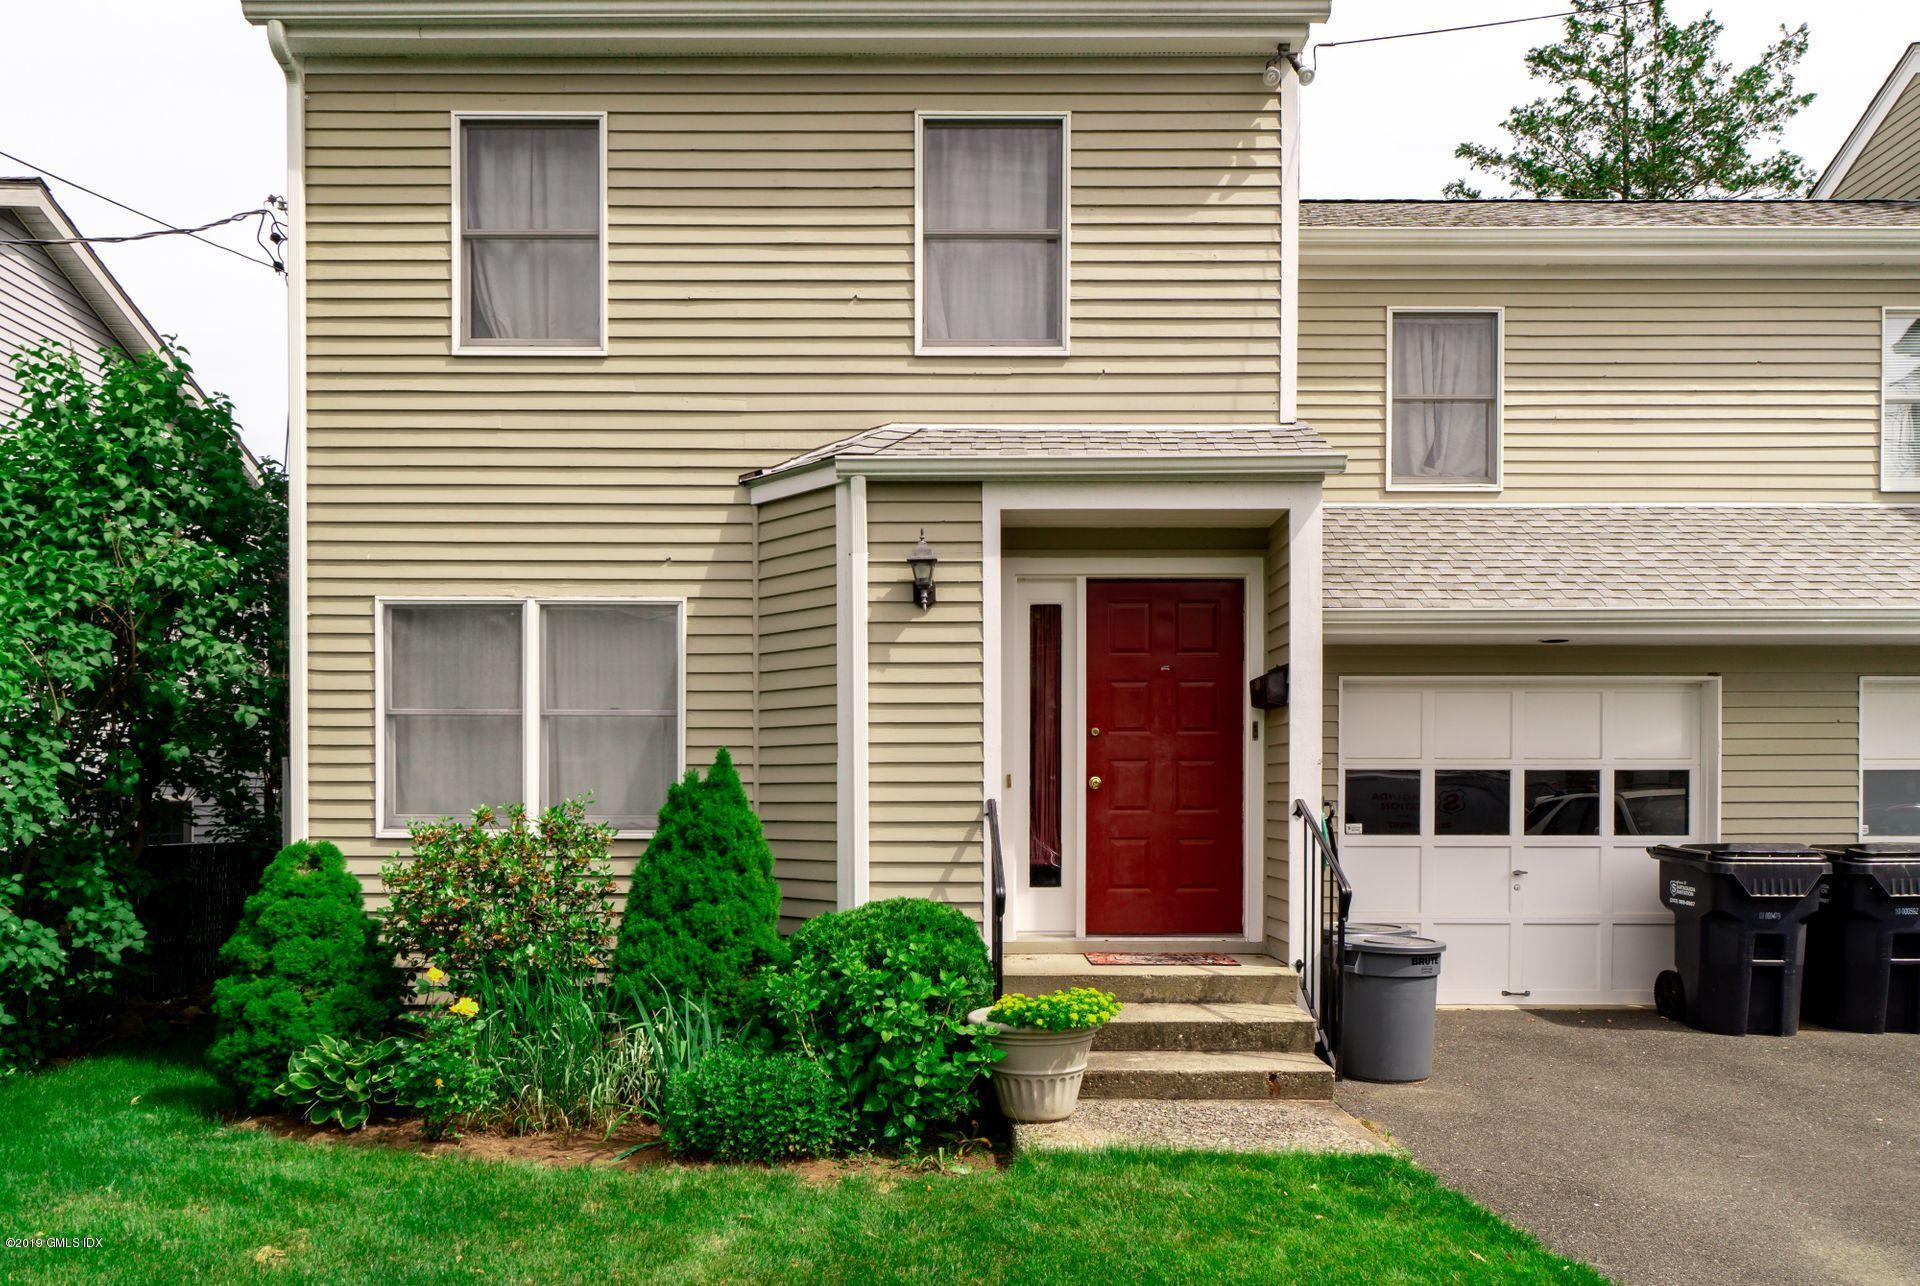 10 Tulip Street,Cos Cob,Connecticut 06807,3 Bedrooms Bedrooms,2 BathroomsBathrooms,See remarks,Tulip,107279